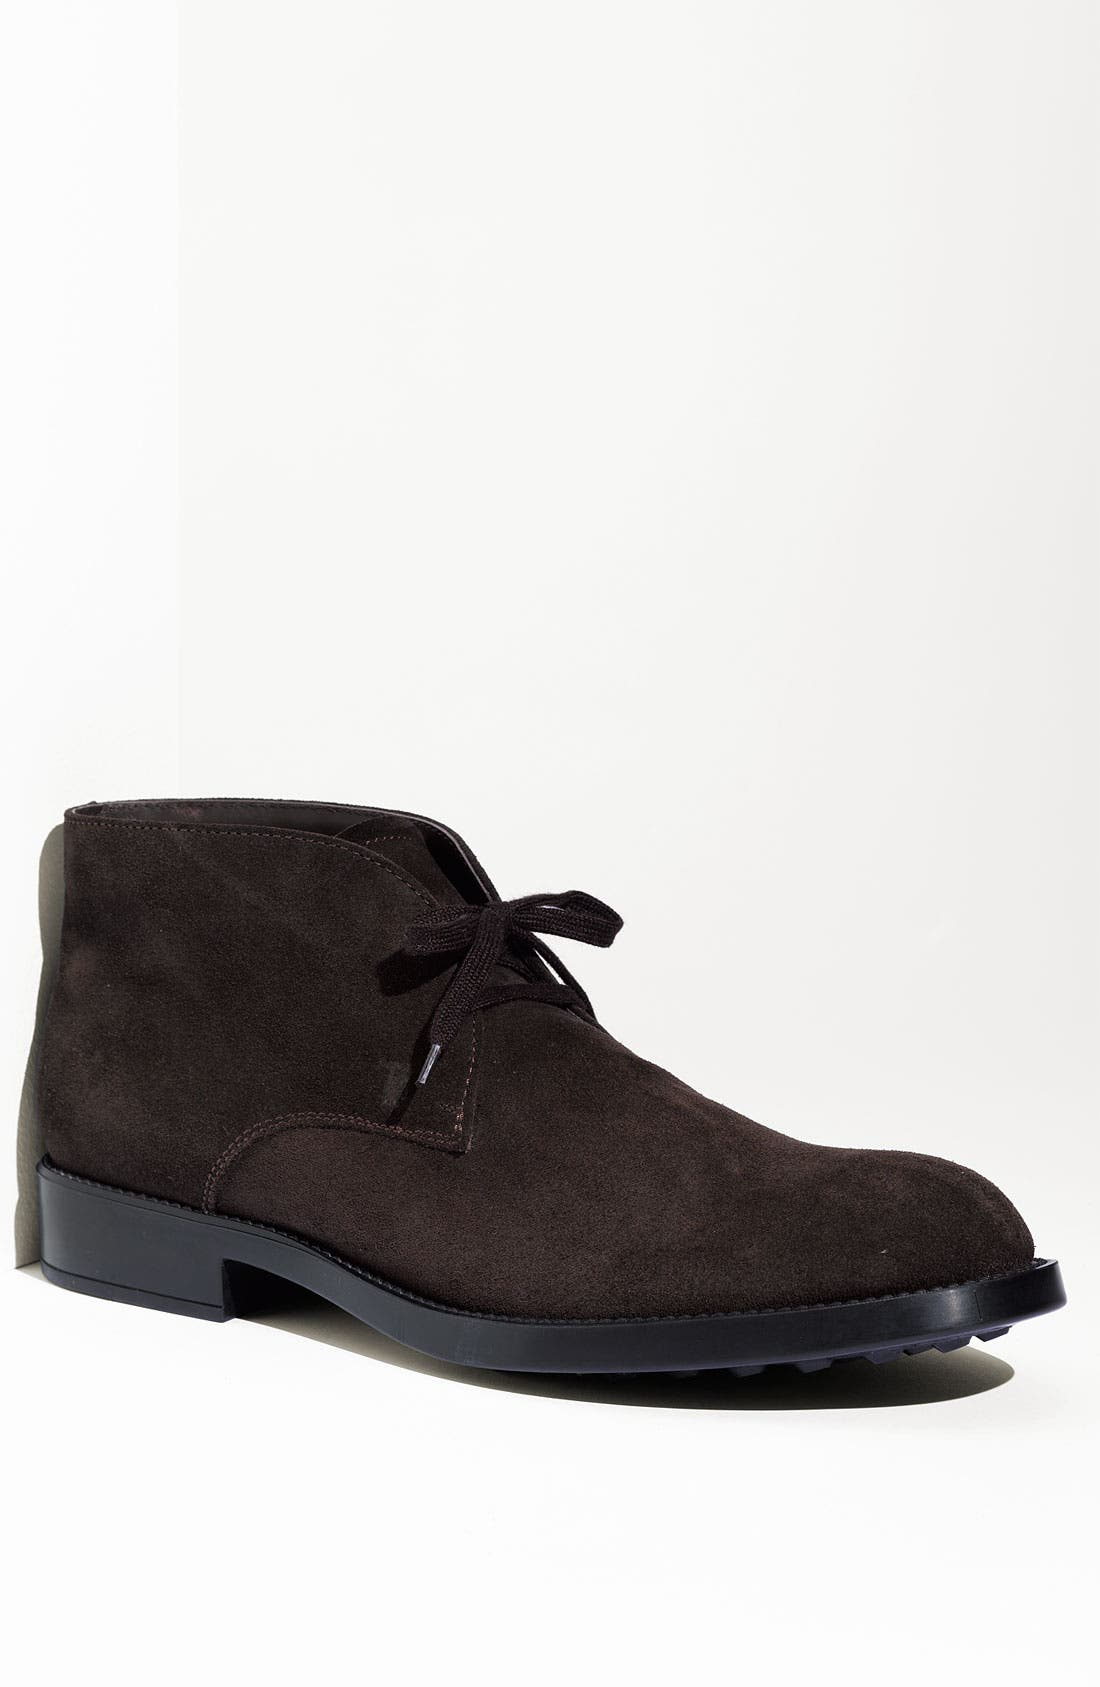 Alternate Image 1 Selected - Tod's 'Esquire Giovane' Chukka Boot